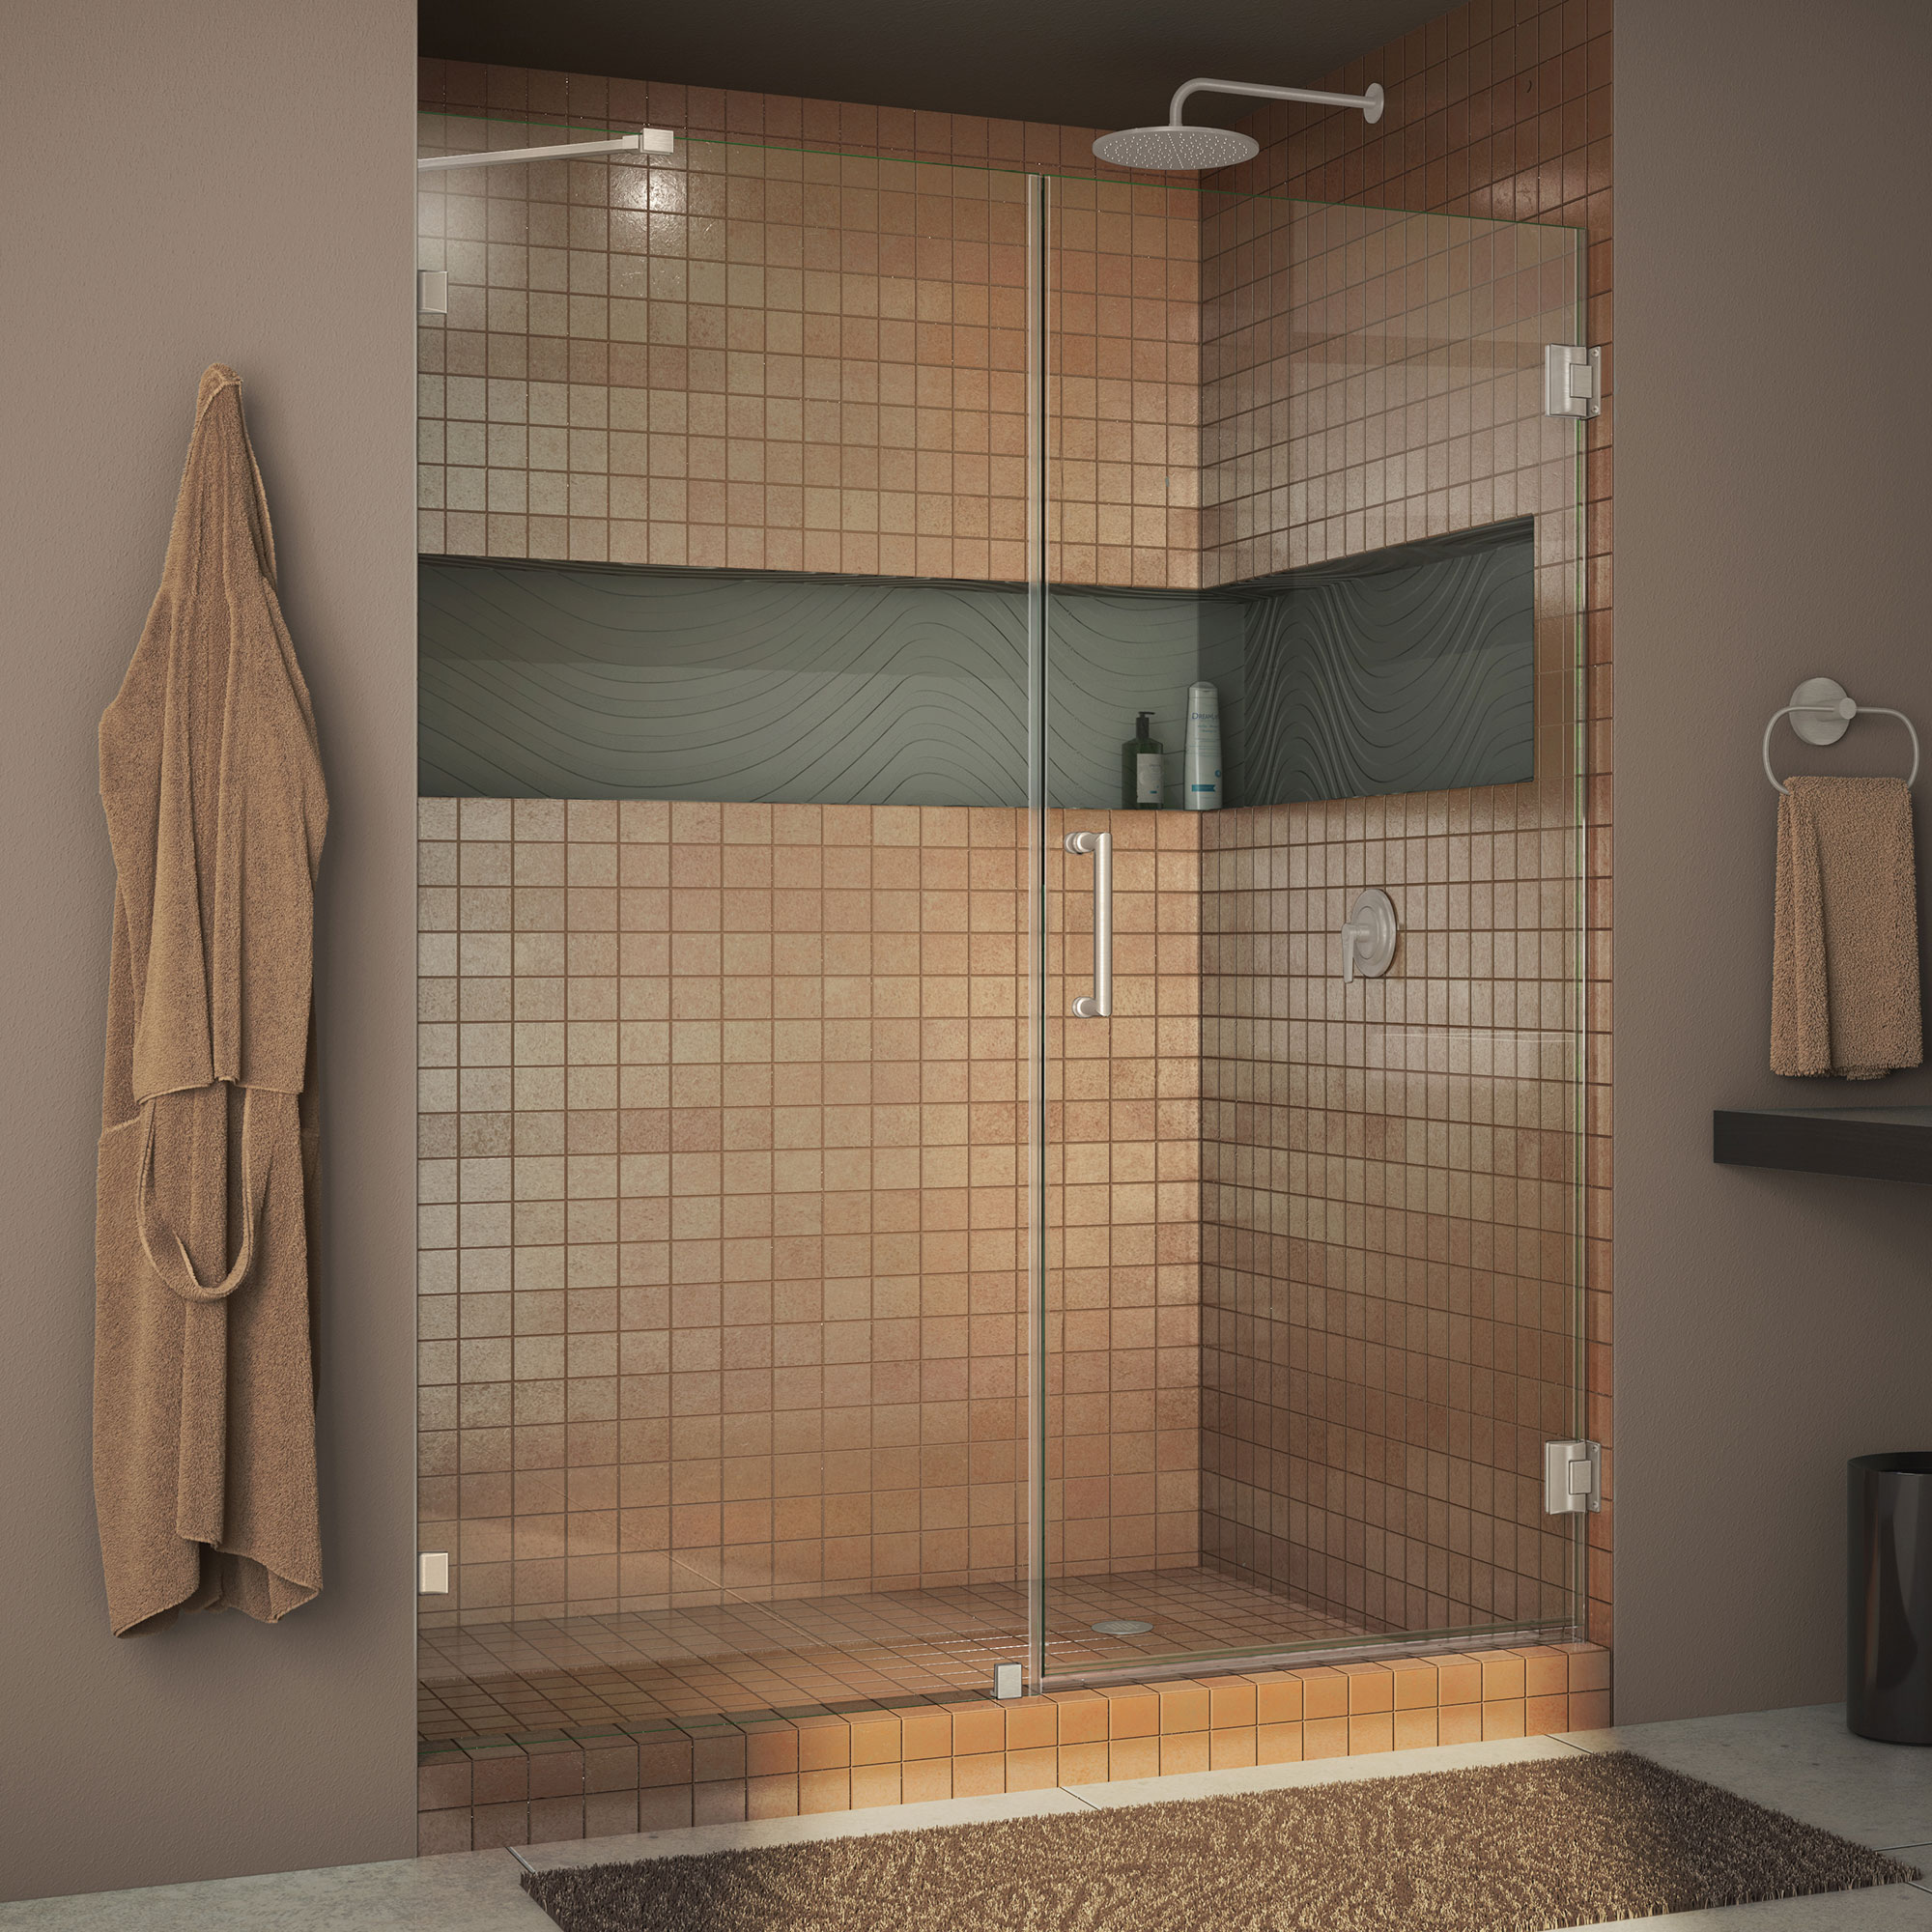 DreamLine Unidoor Lux 60 in. W x 72 in. H Fully Frameless Hinged Shower Door with Support Arm in Brushed Nickel